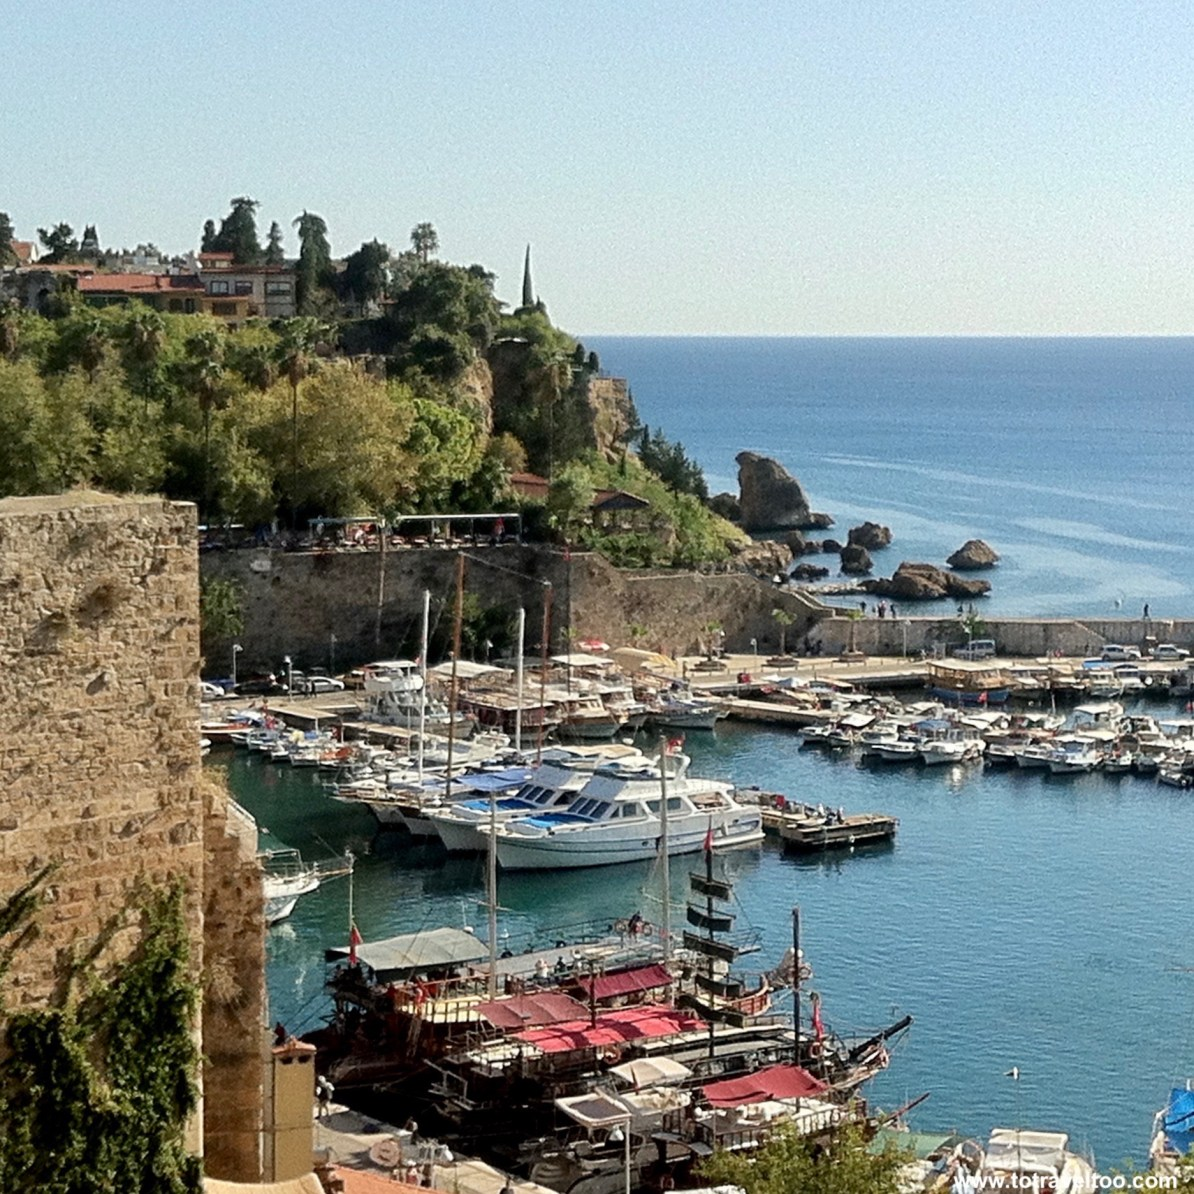 The harbour of Antalya